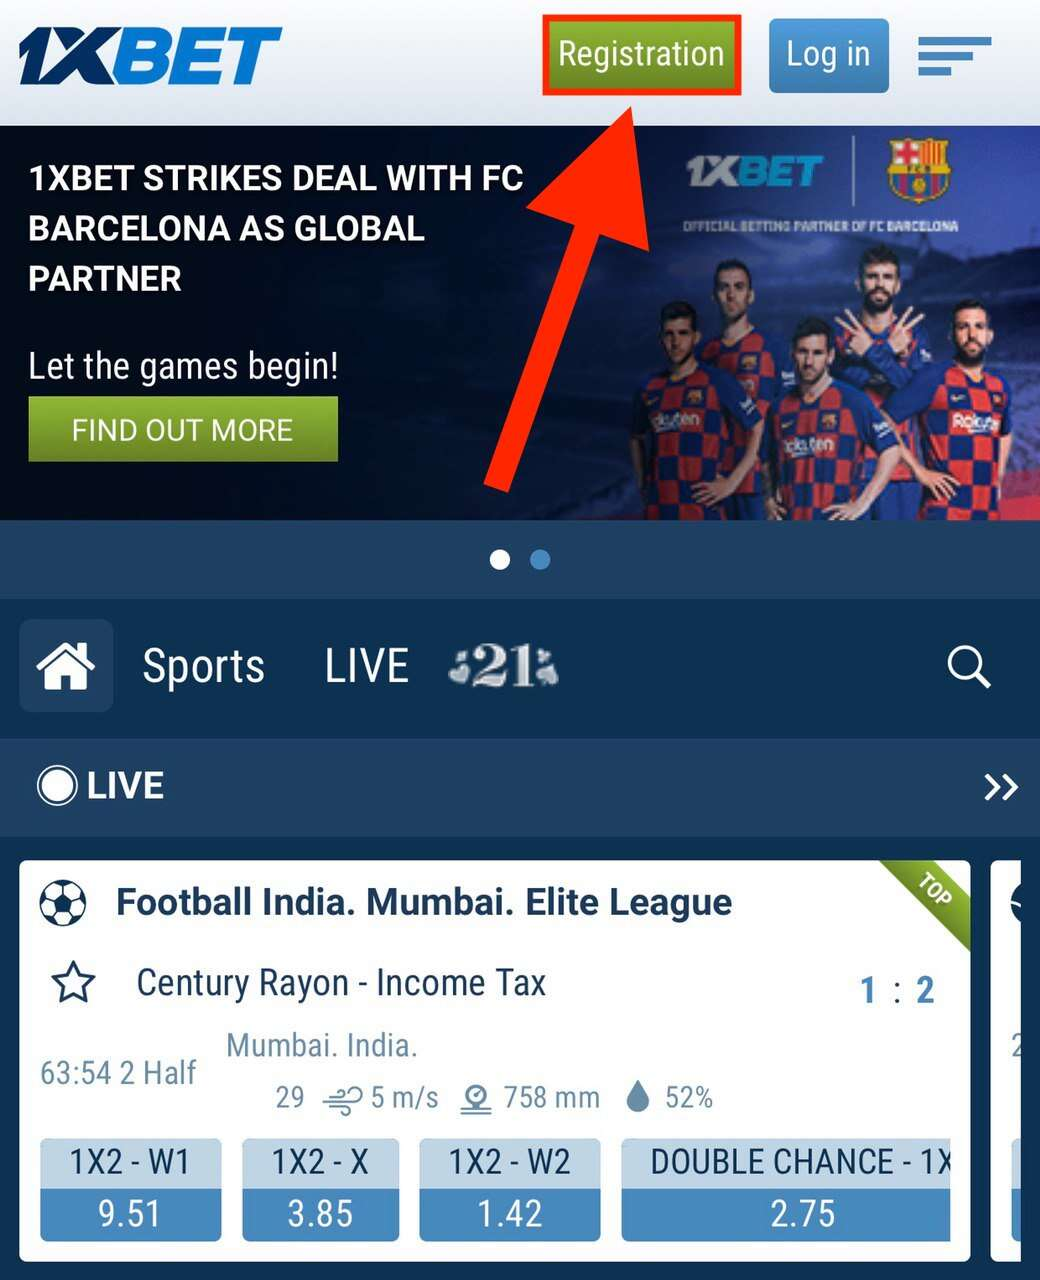 1xbet main page